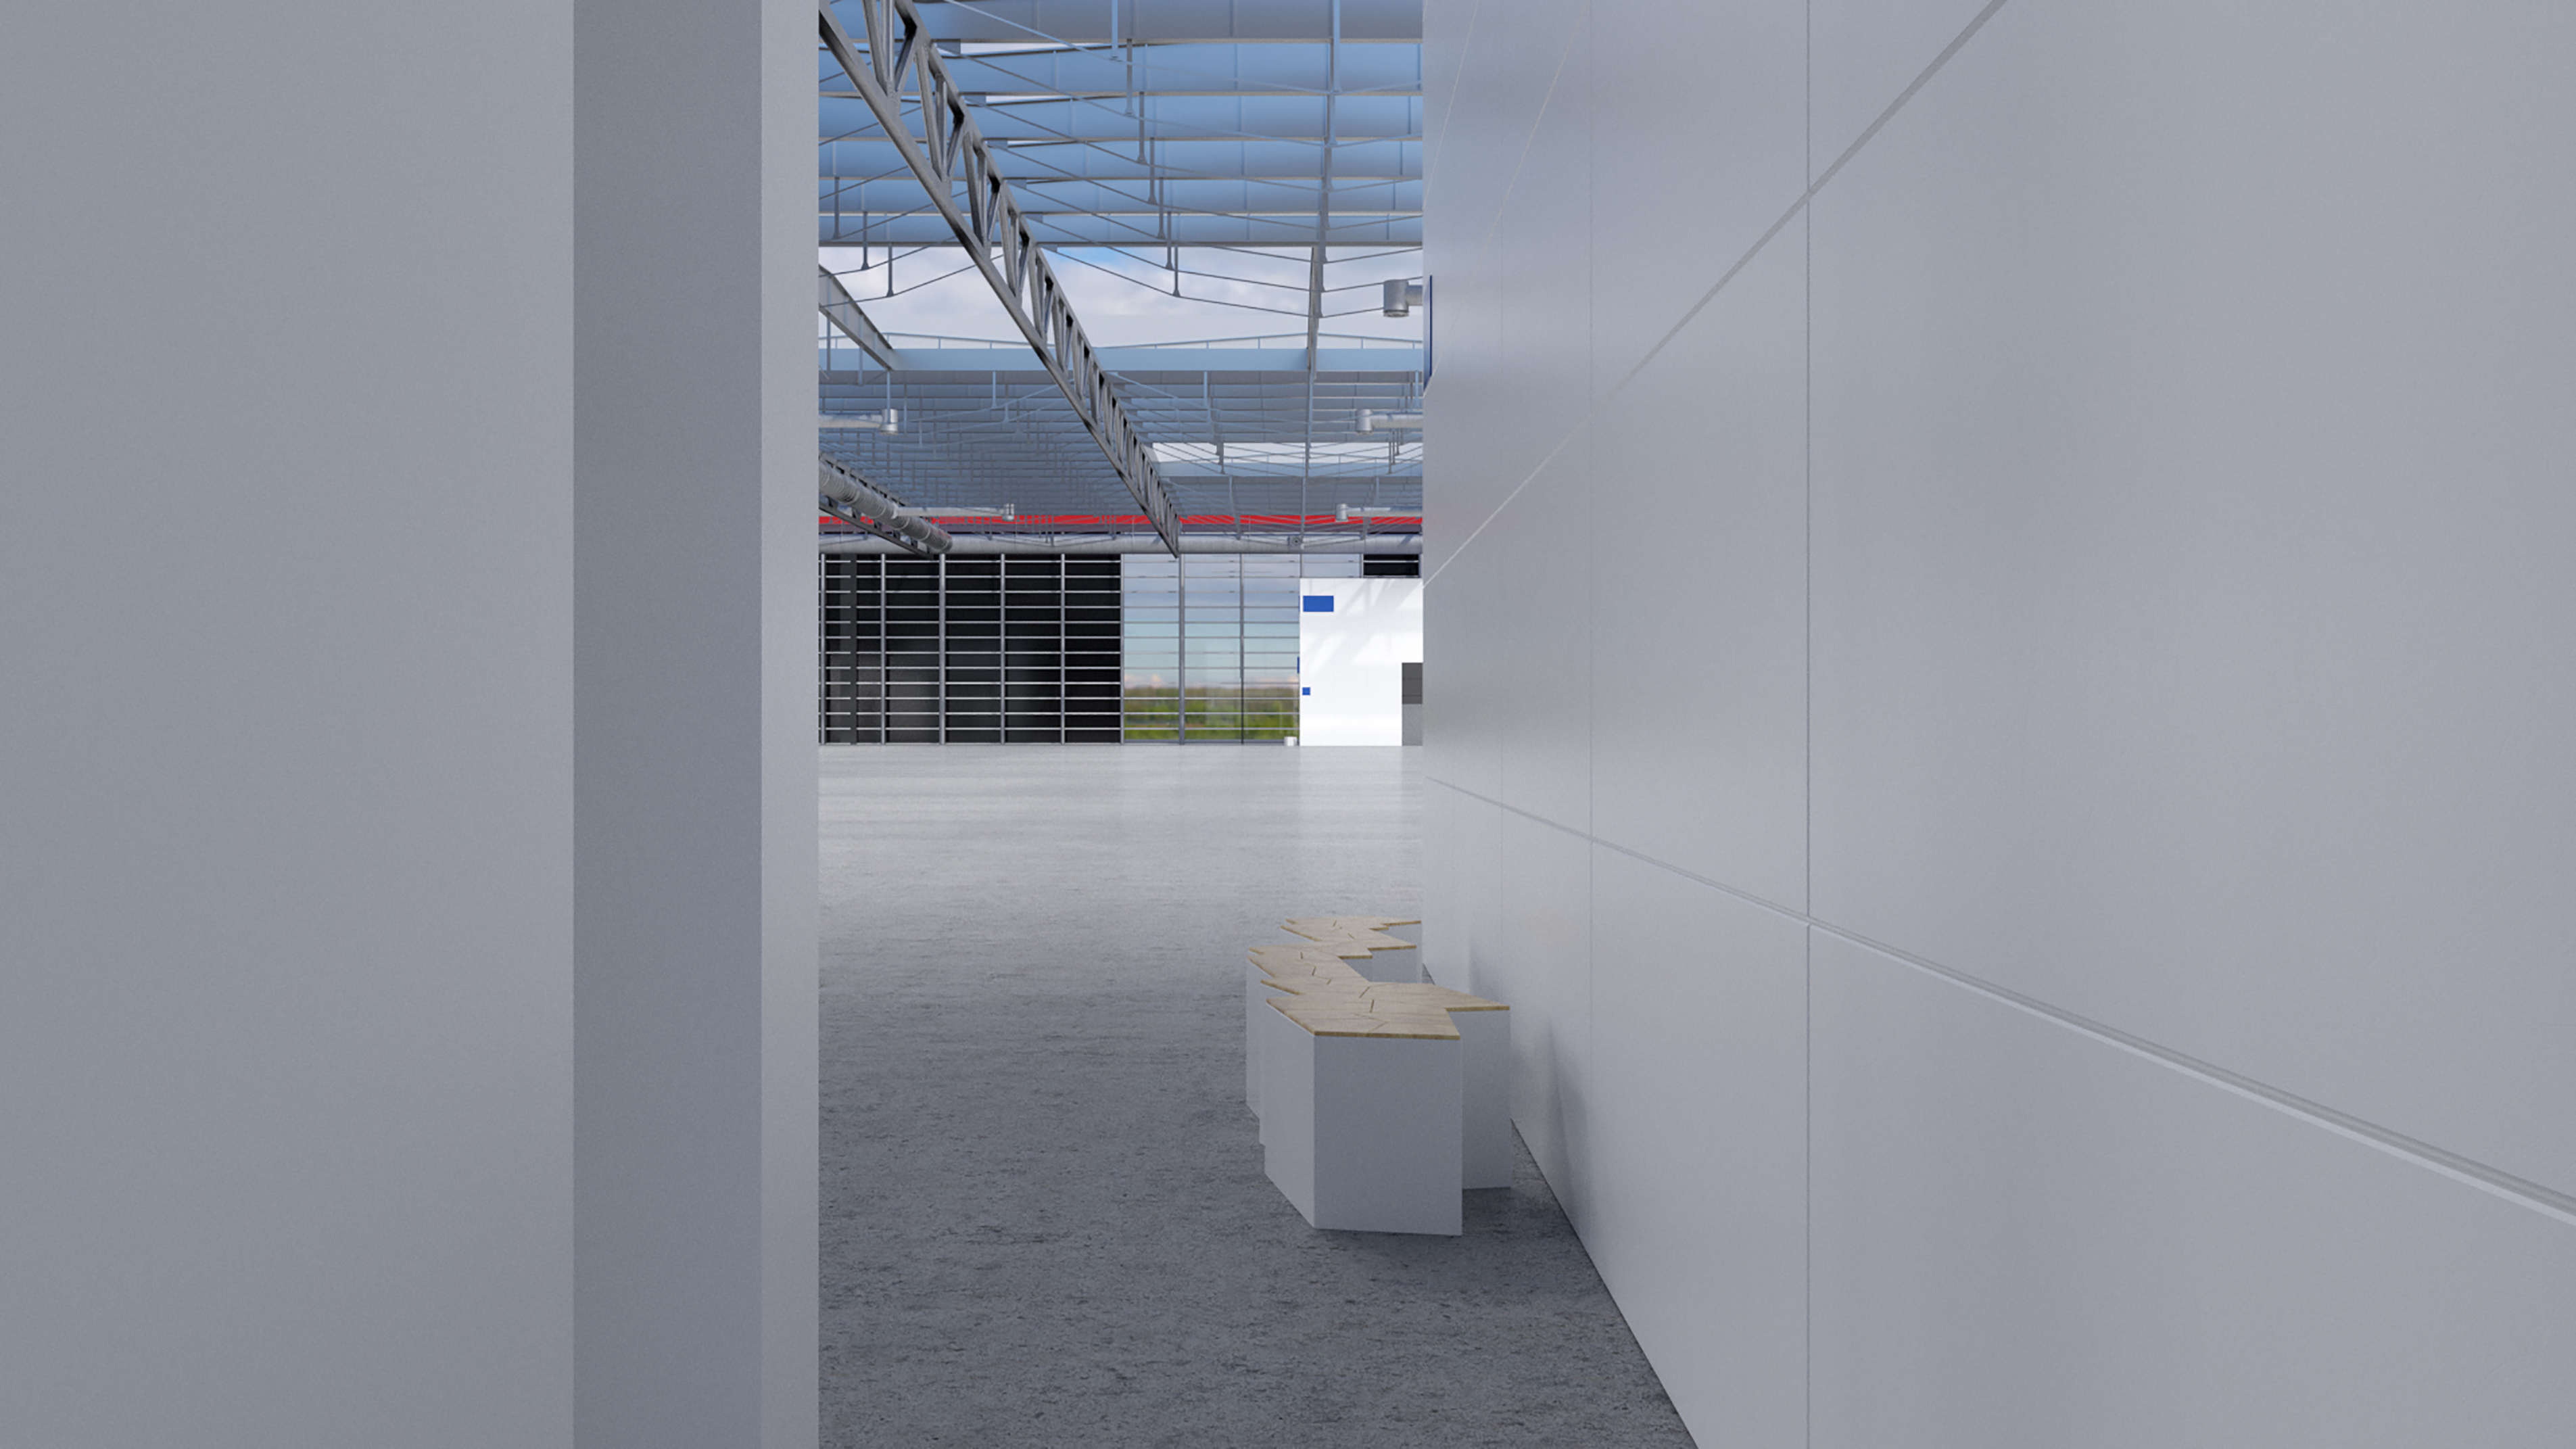 EPLAN and Rittal will be exhibiting at virtual IndustryExpo in 2019